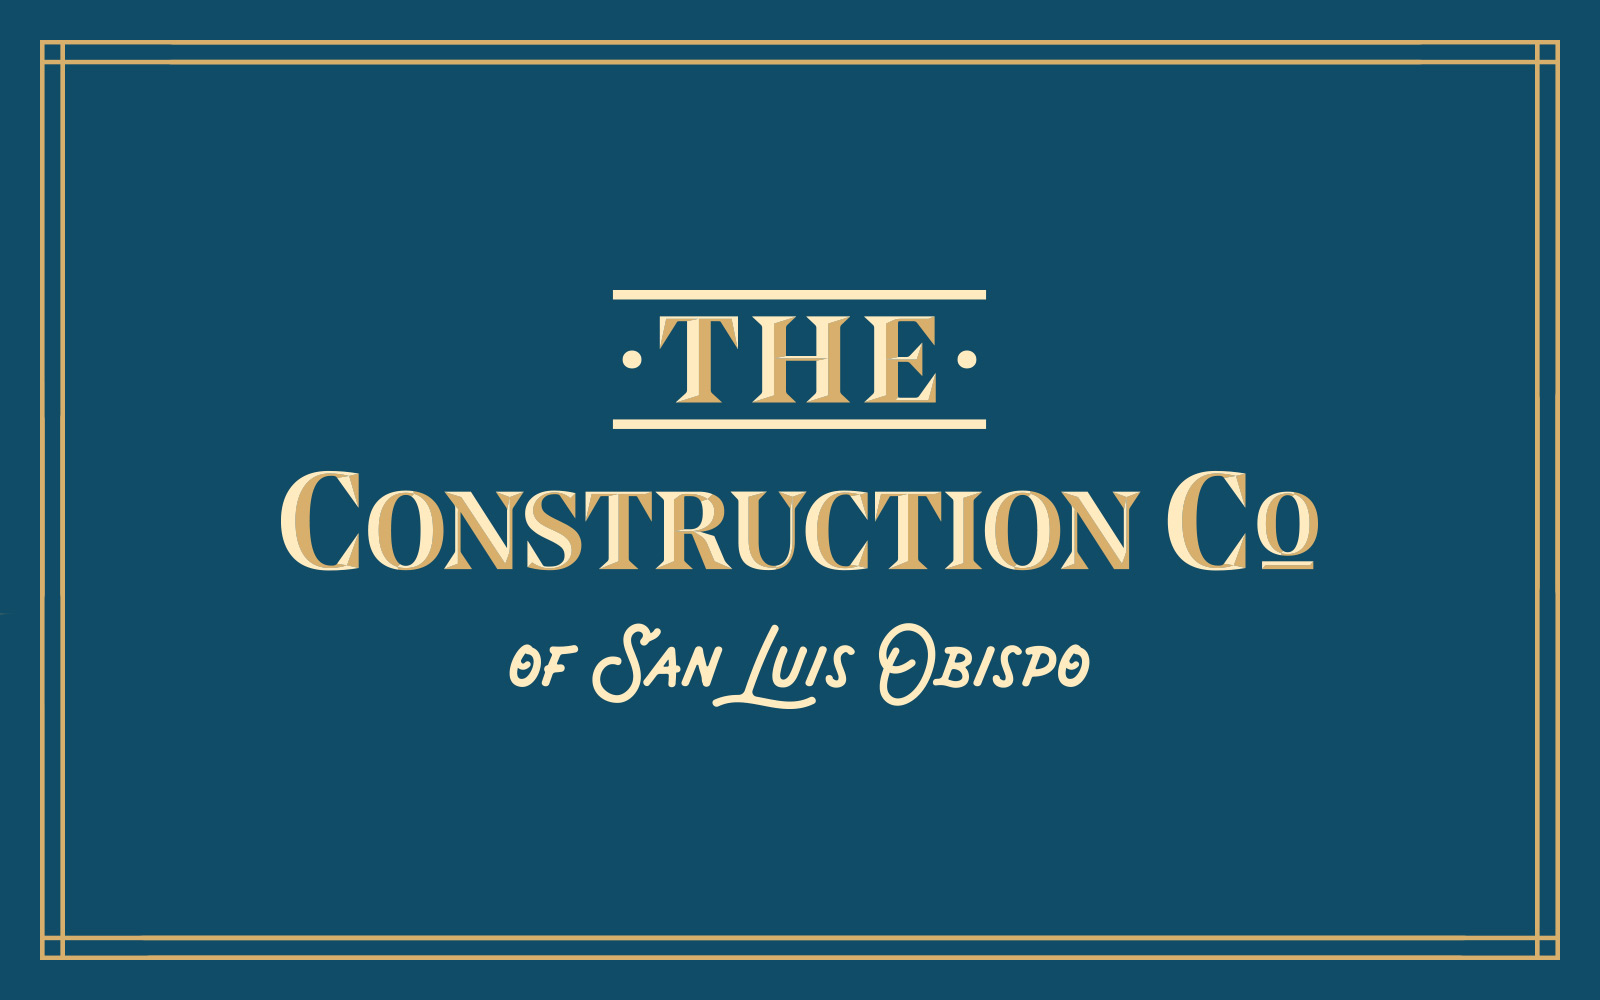 THE Construction Co of SLO brand development cover